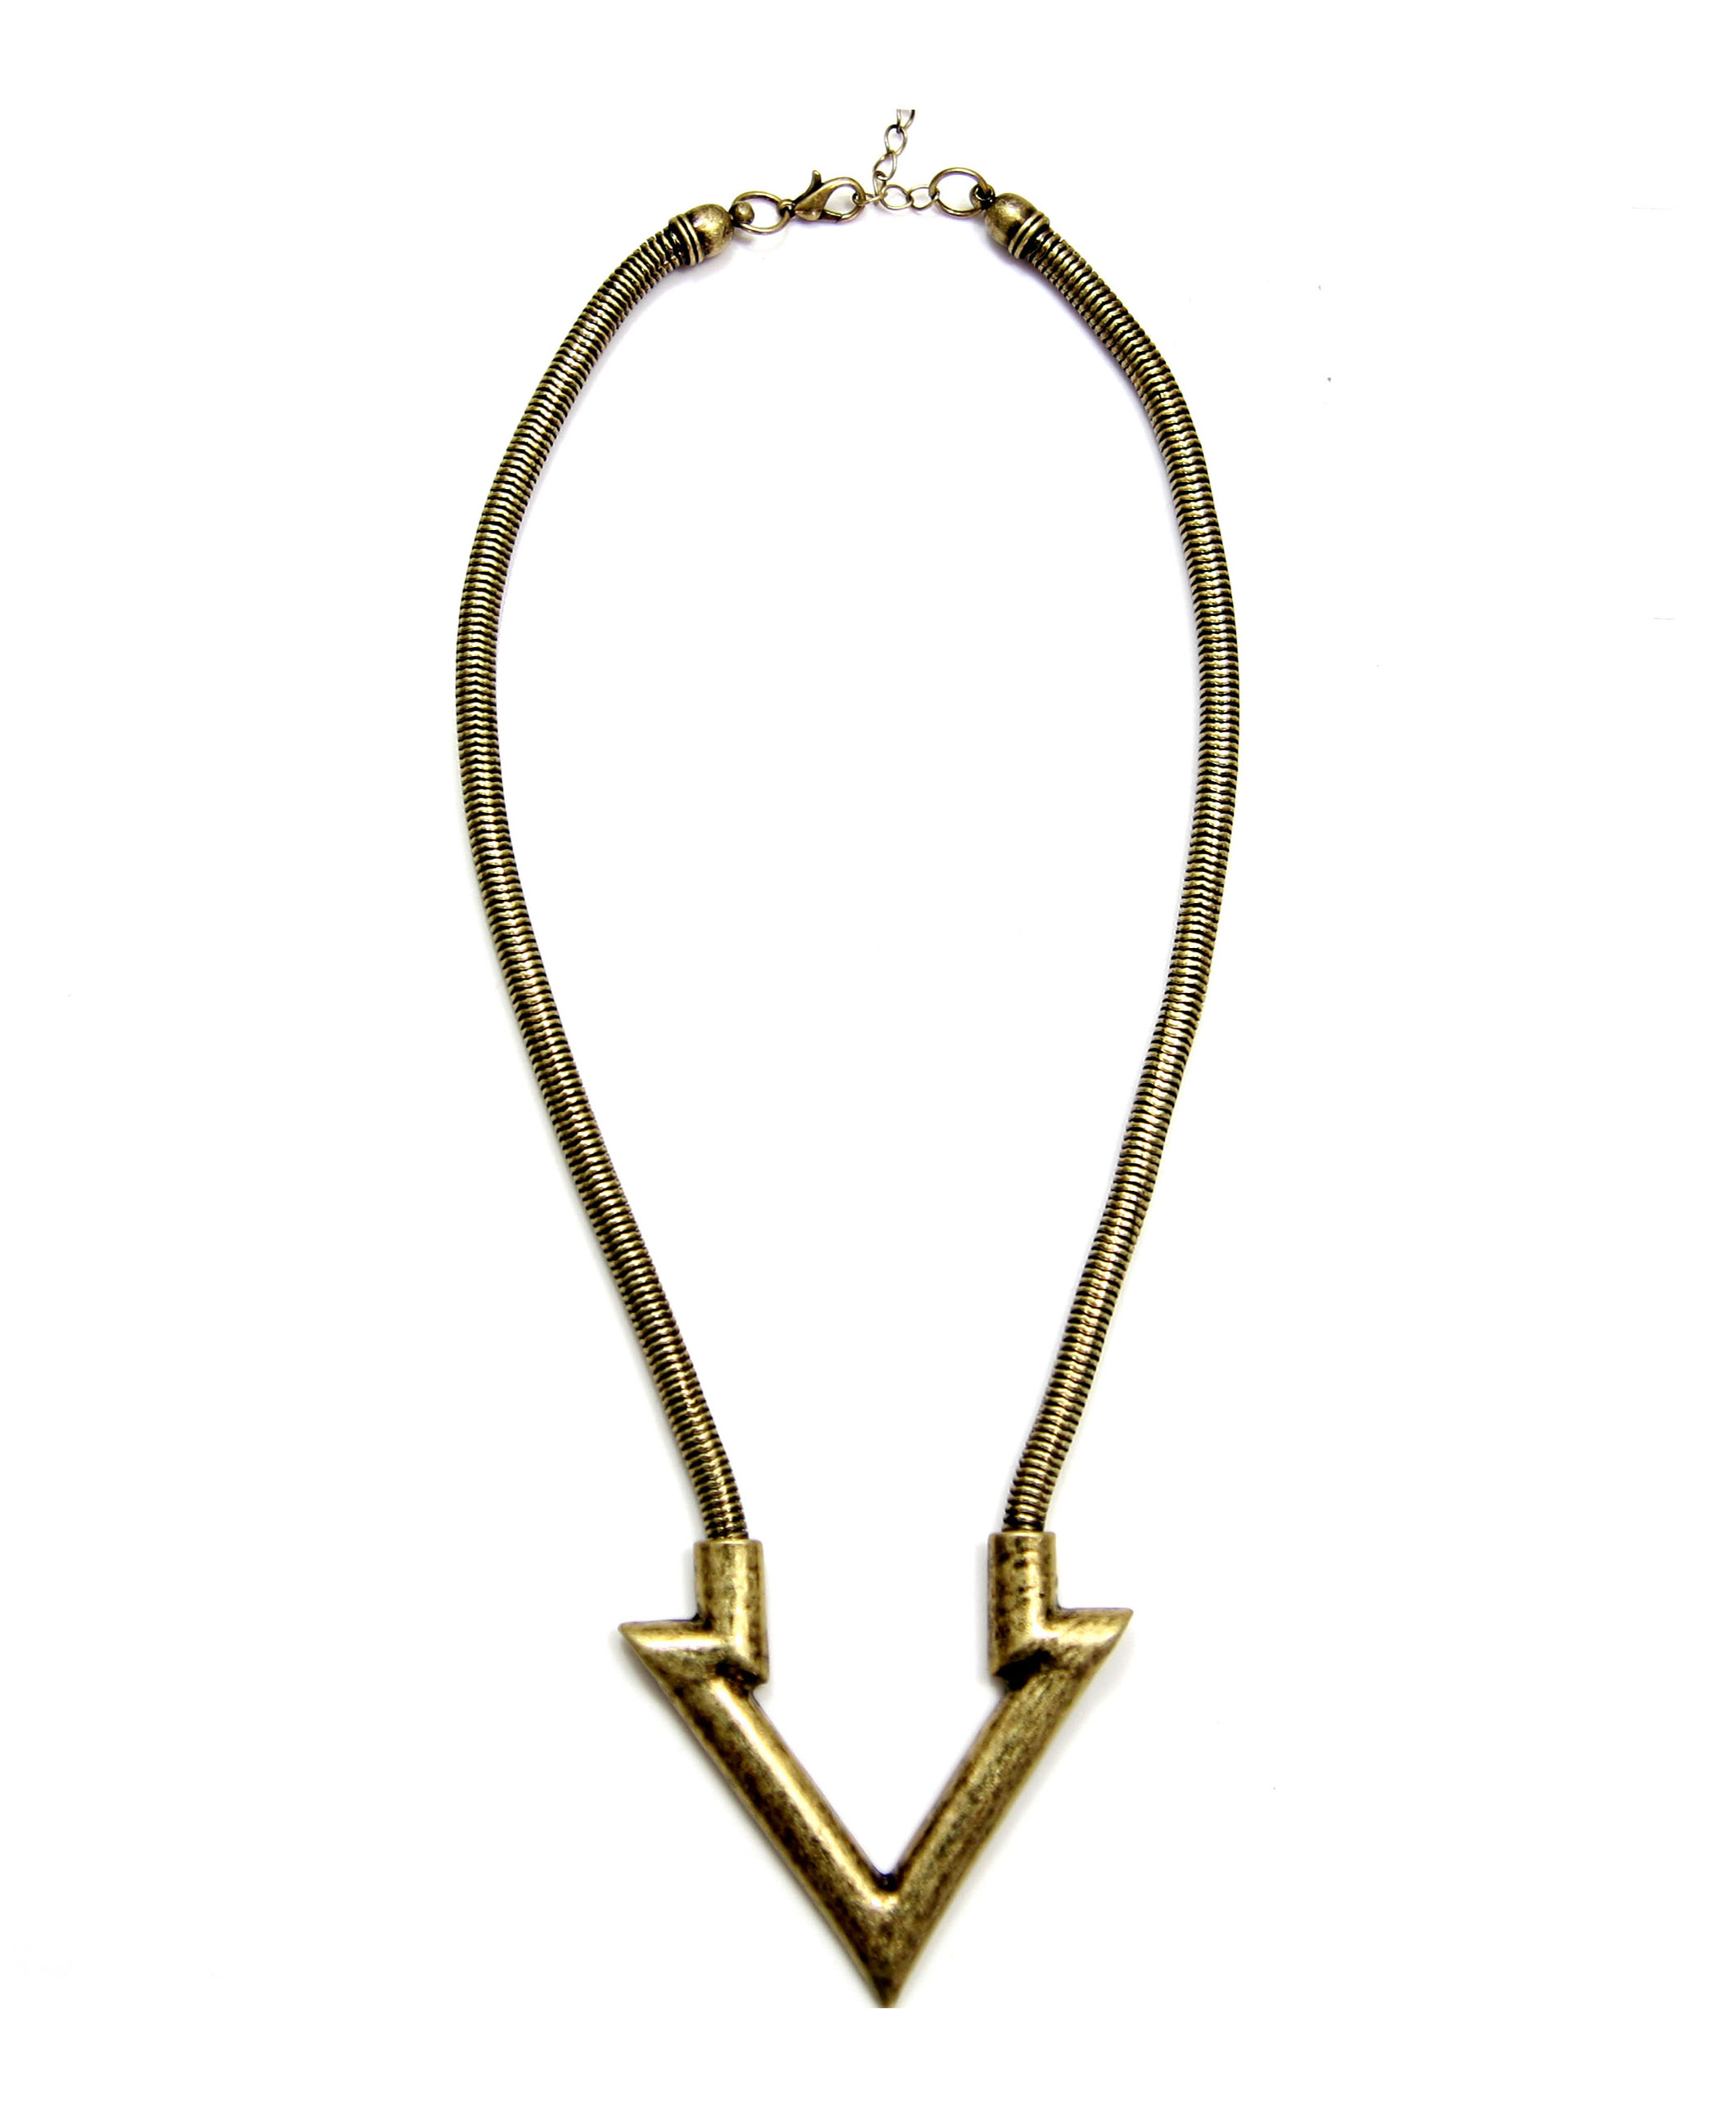 Alloy Necklace with Triangle Pendant